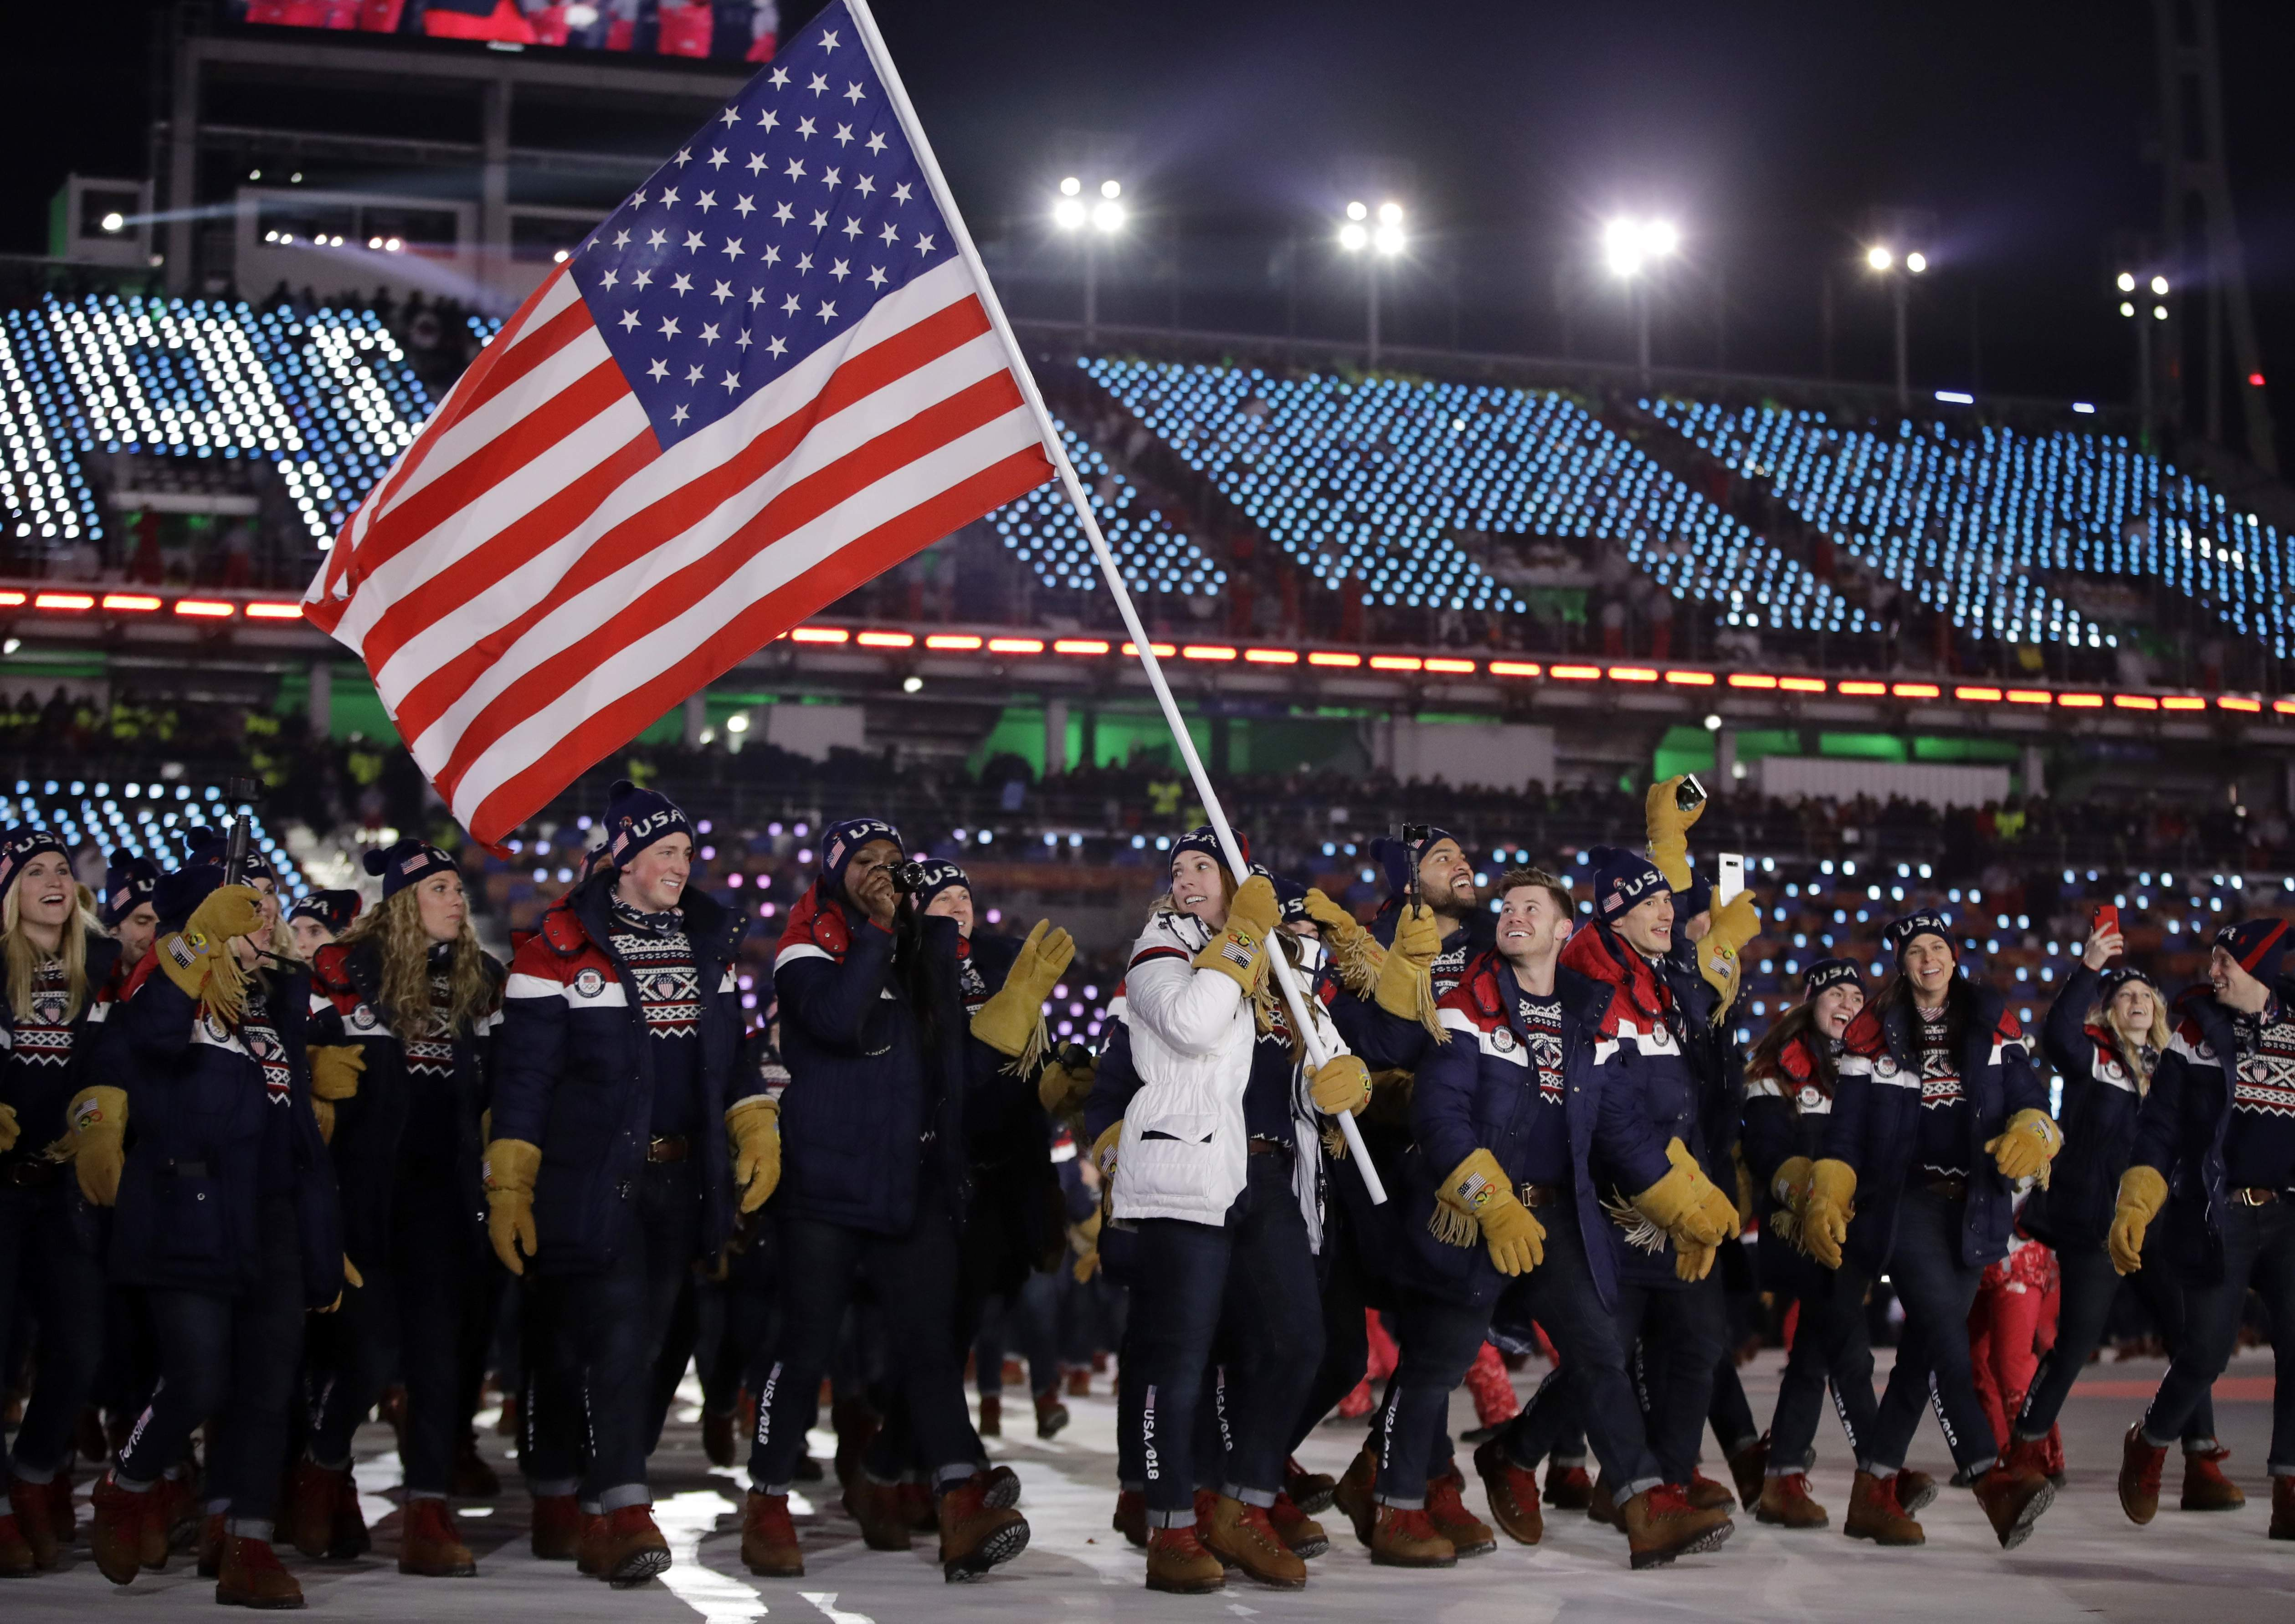 Erin Hamlin carries the flag of the United States during the opening ceremony of the 2018 Winter Olympics in Pyeongchang, South Korea, Friday, Feb. 9, 2018. (AP Photo/Vadim Ghirda)